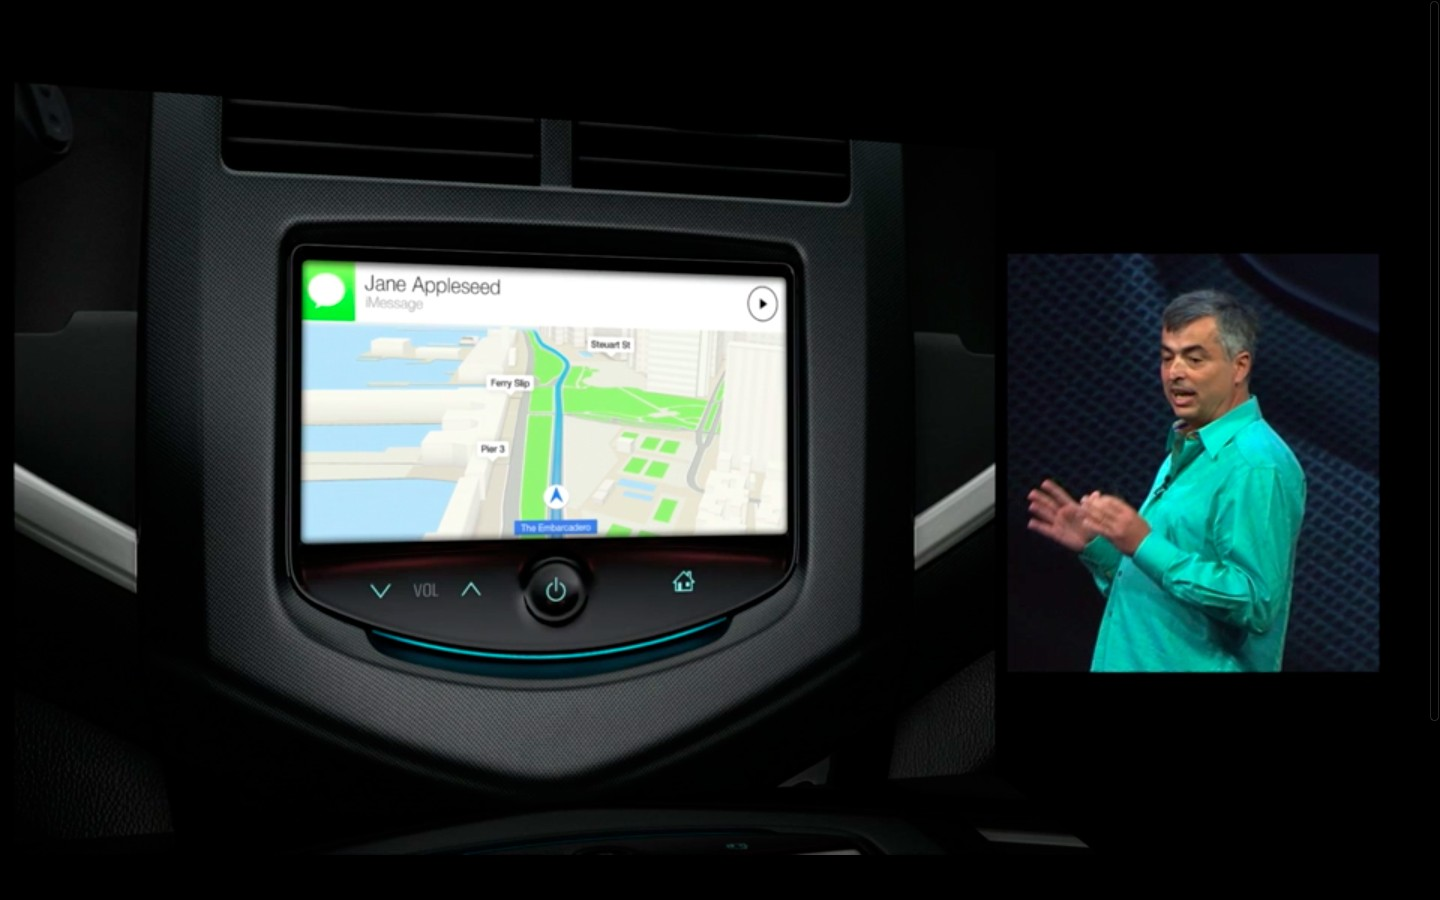 Apple: iOS 7 mit Multitasking und neuem Interface - Apple Maps im Auto (Bild: Apple/Screenshot: Golem.de)